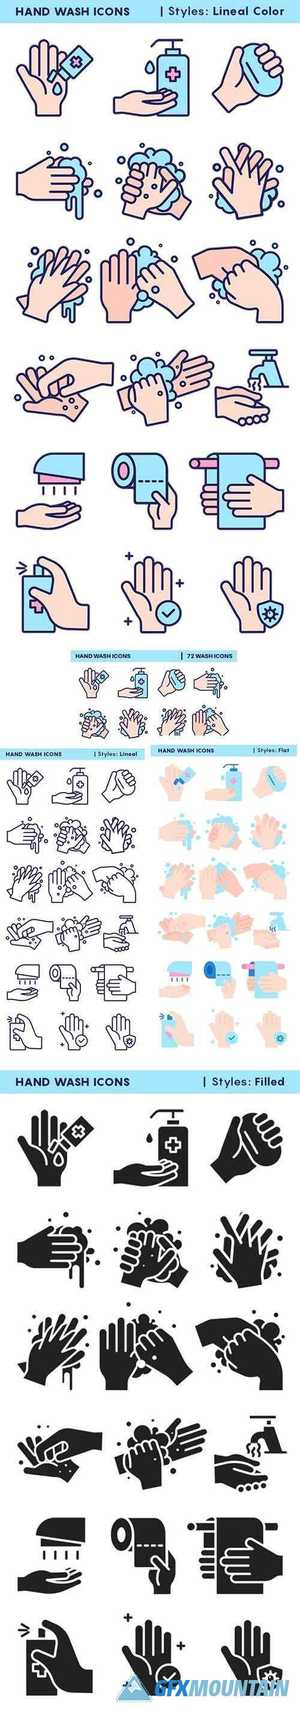 Hand Wash Icons